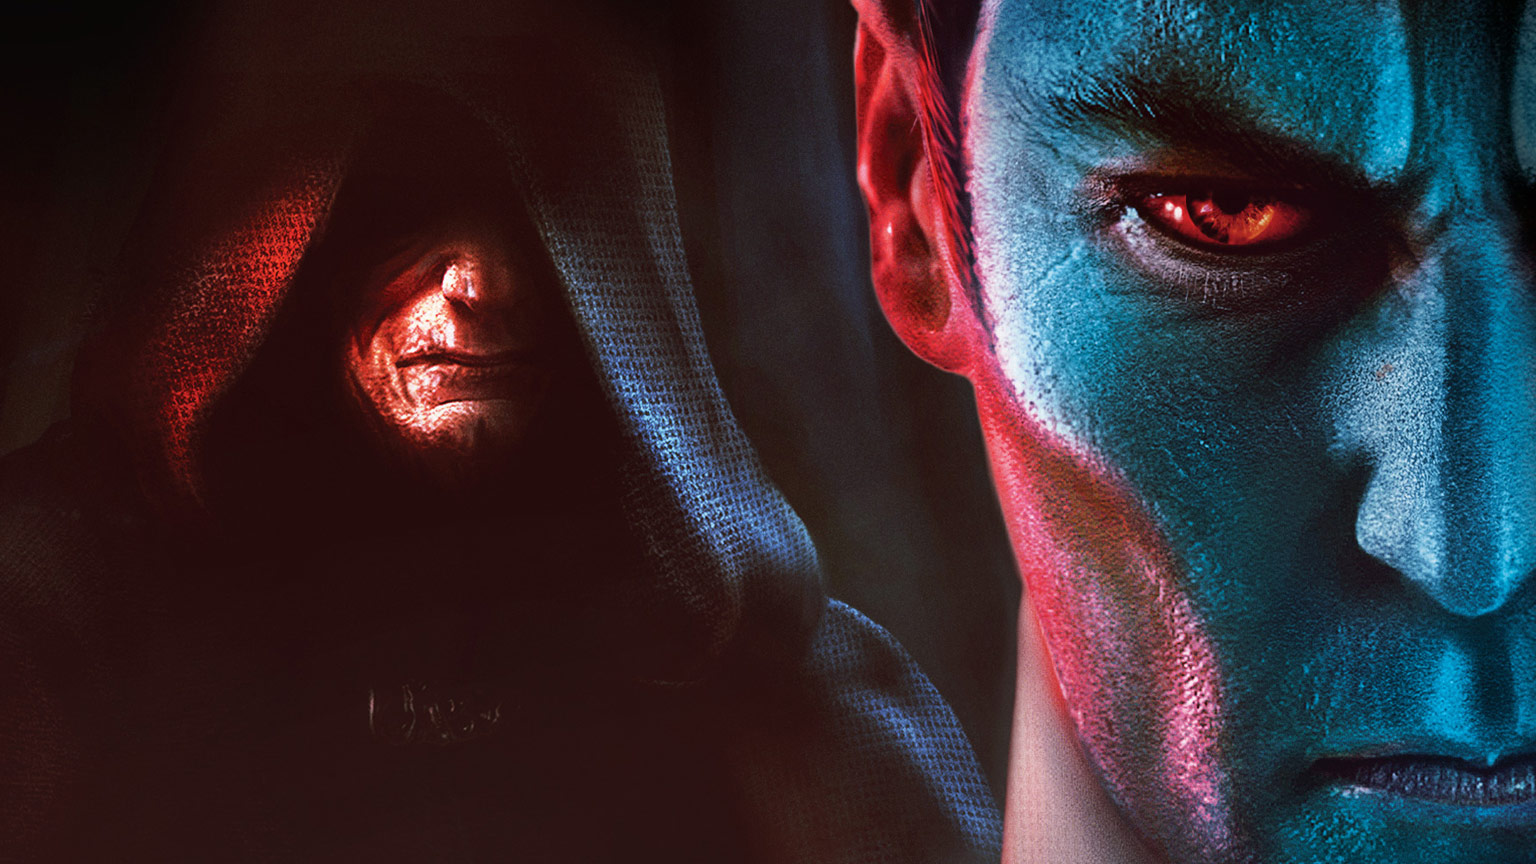 The Emperor and Thrawn on the cover of Thrawn: Treason